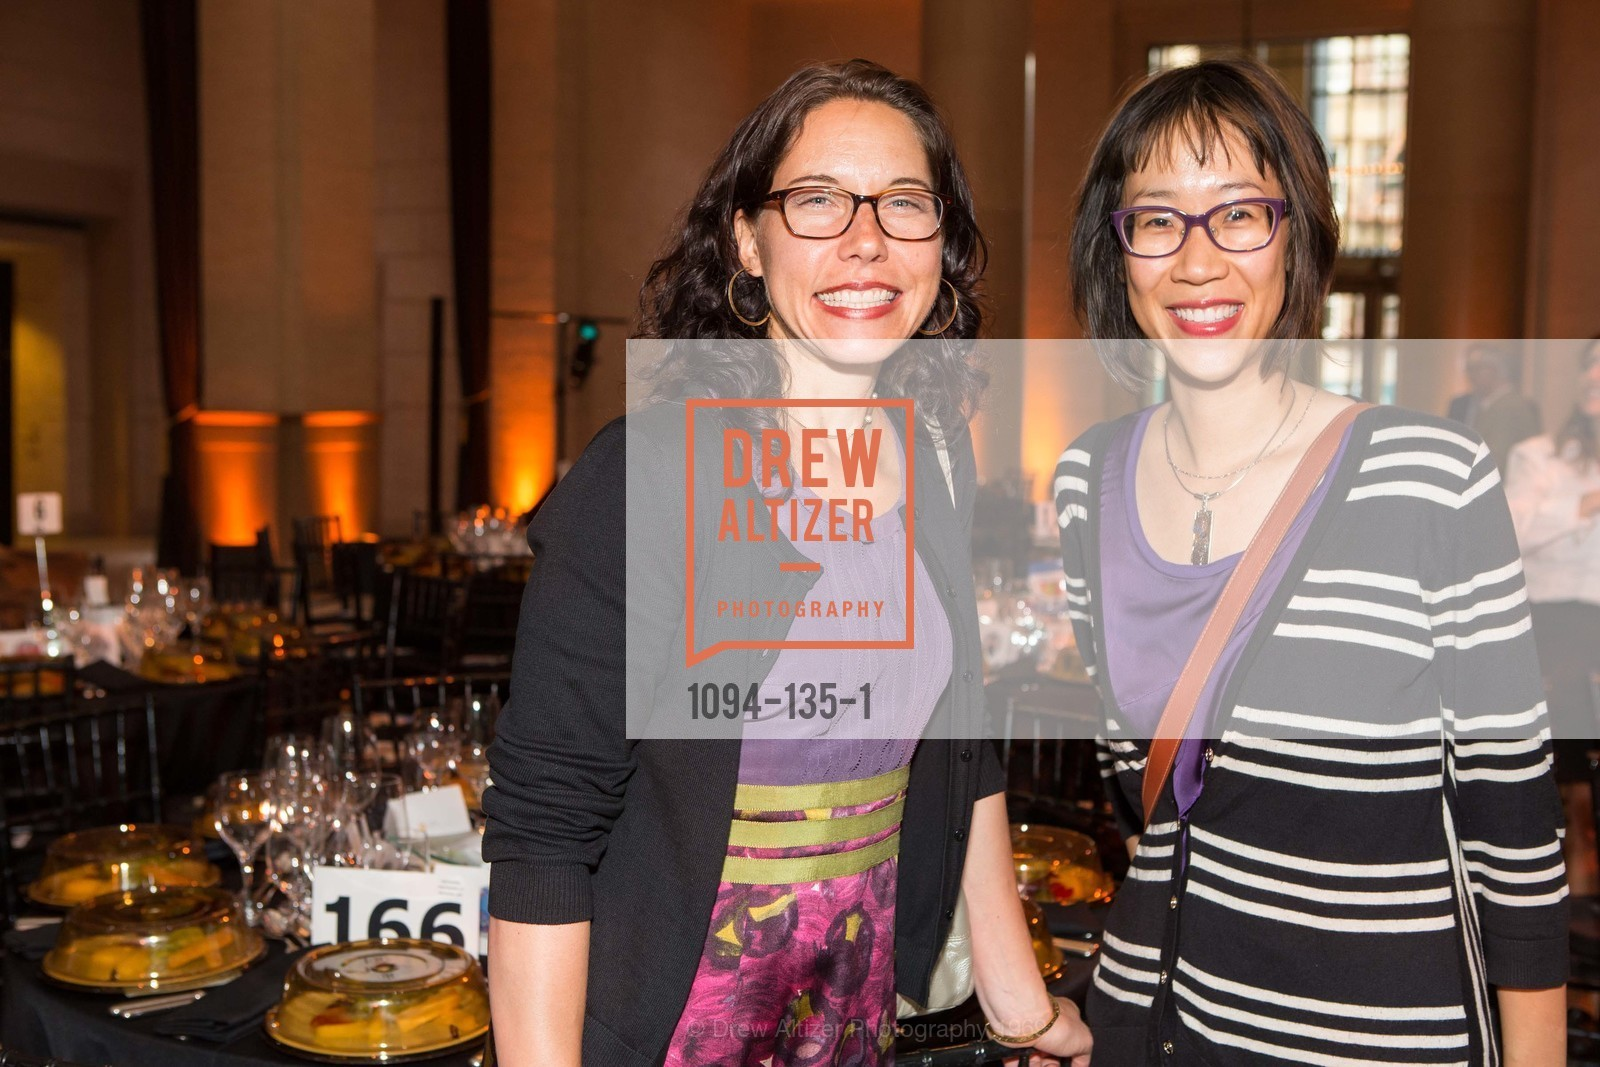 Extras, Center for Environmental Health  2015 Gala, May 27th, 2015, Photo,Drew Altizer, Drew Altizer Photography, full-service event agency, private events, San Francisco photographer, photographer California